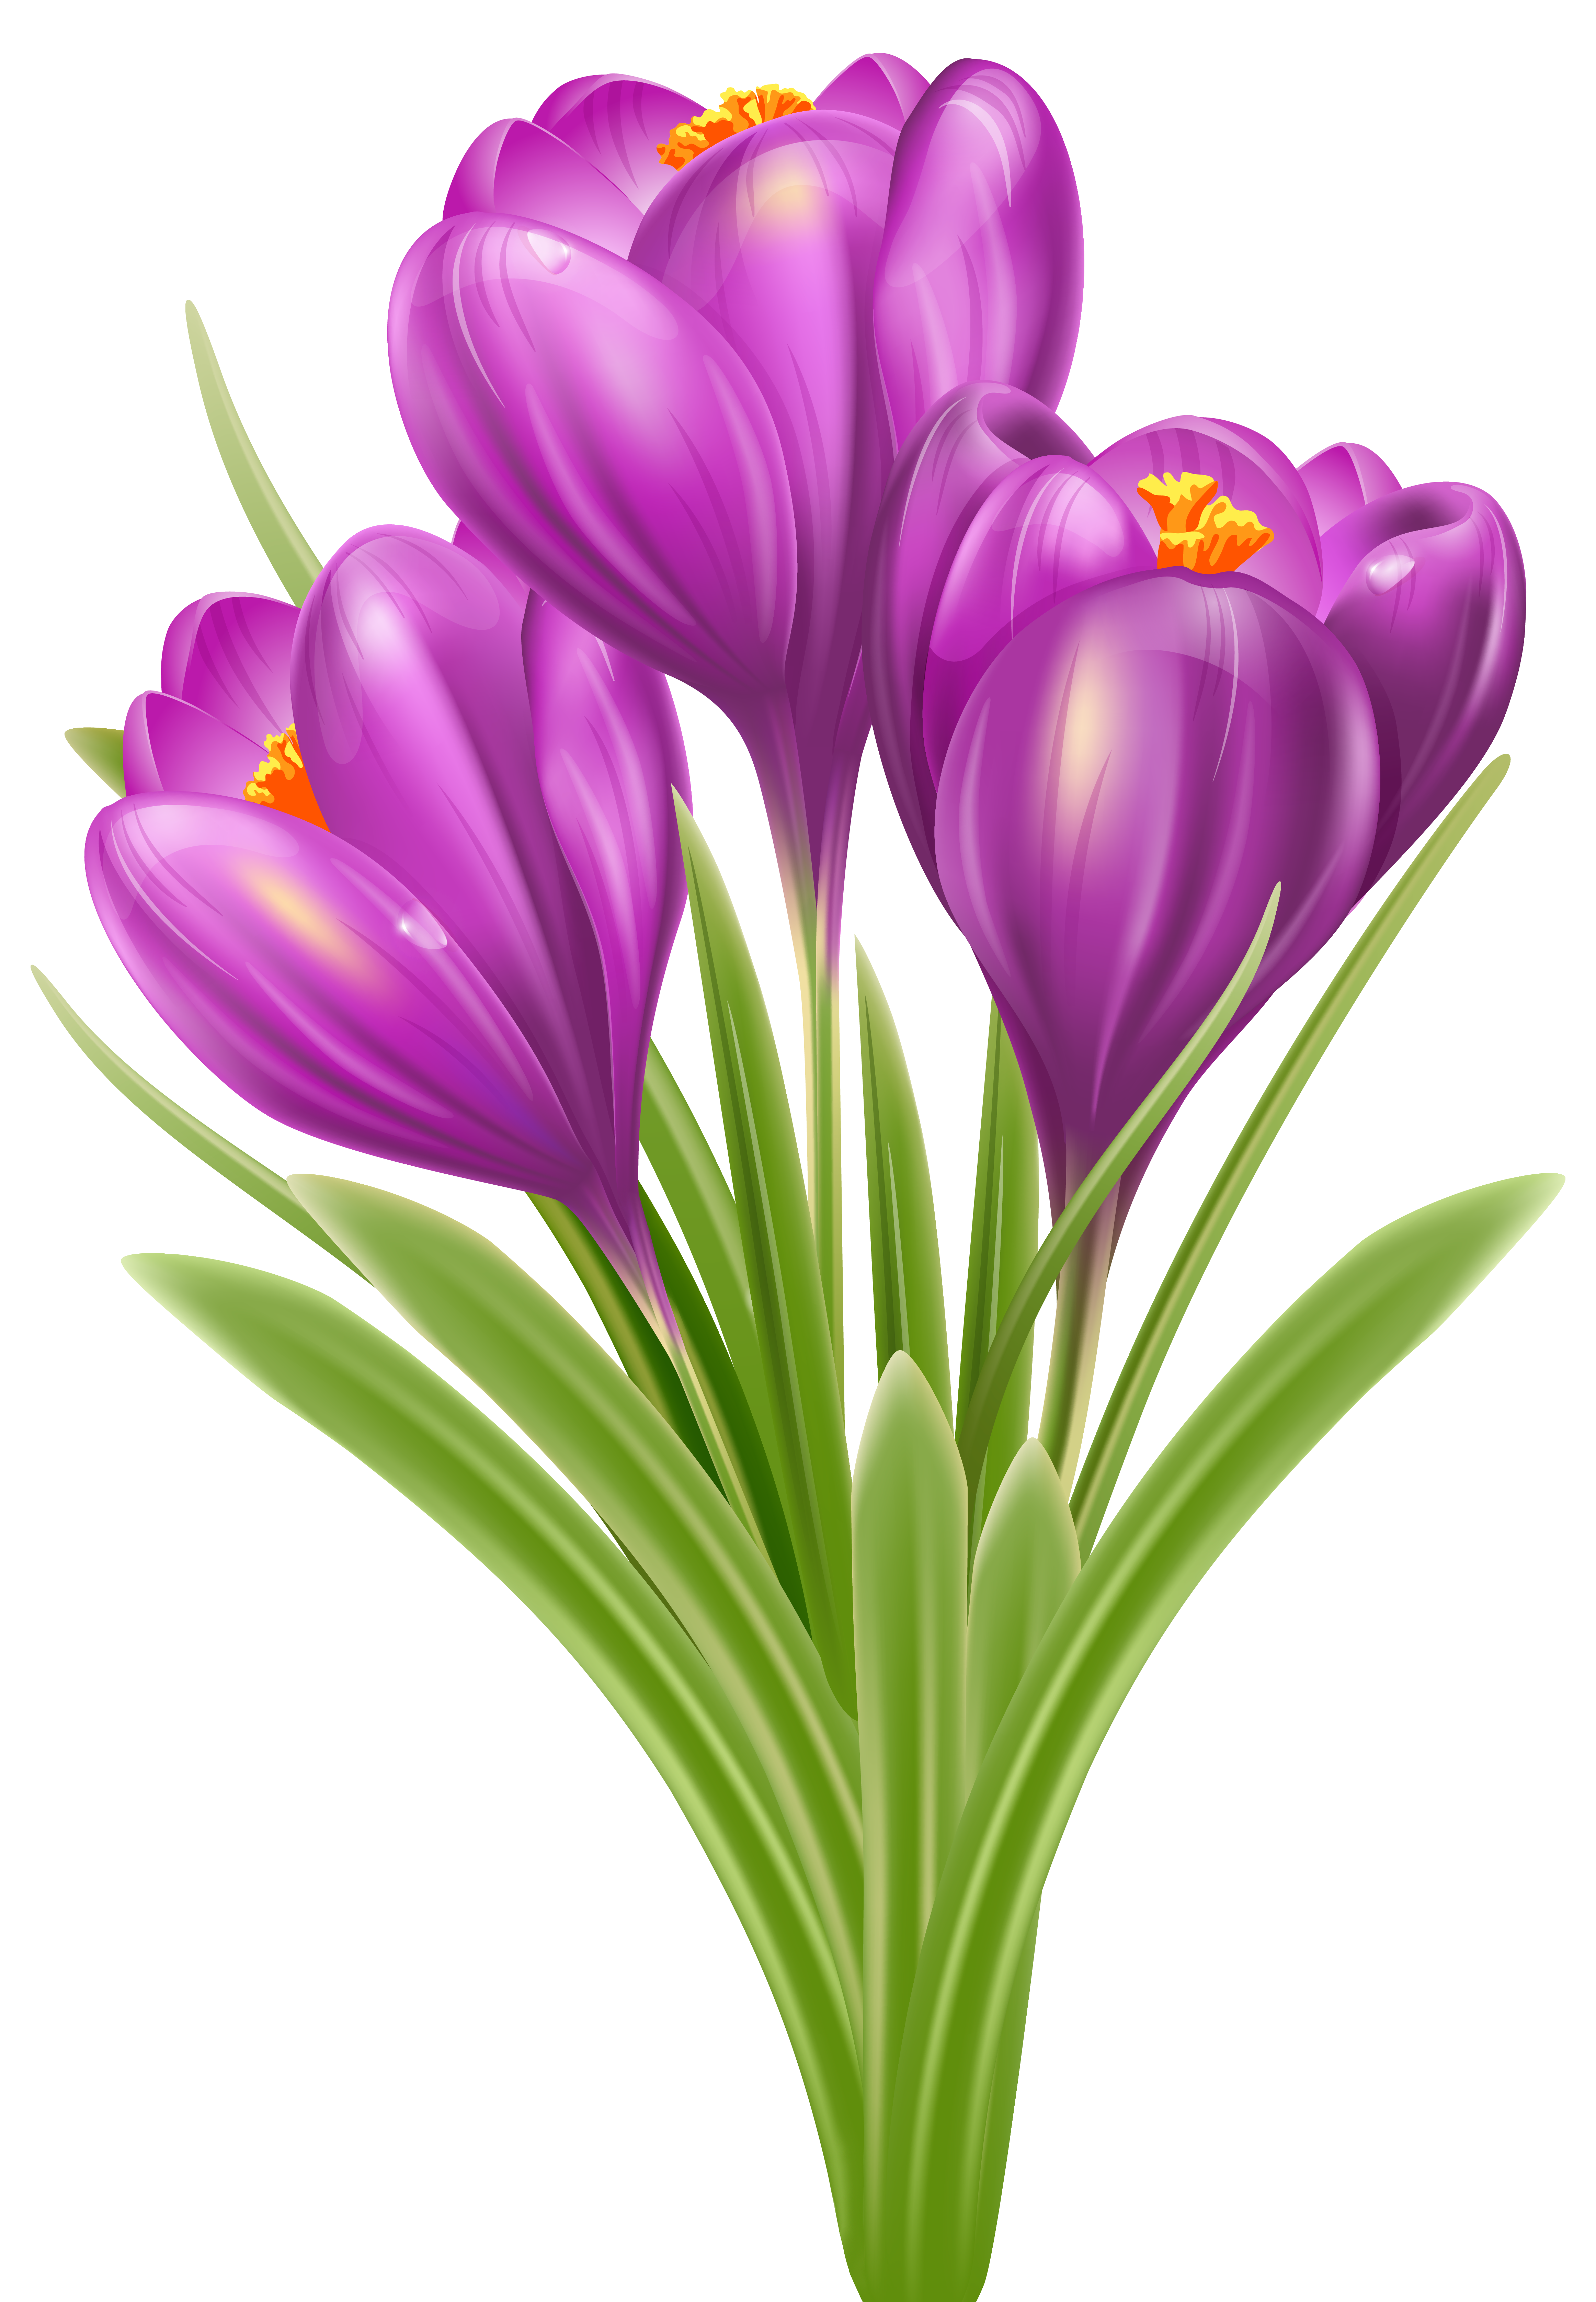 Spring Crocus Png - Spring Crocus PNG Image   Gallery Yopriceville - High-Quality ...